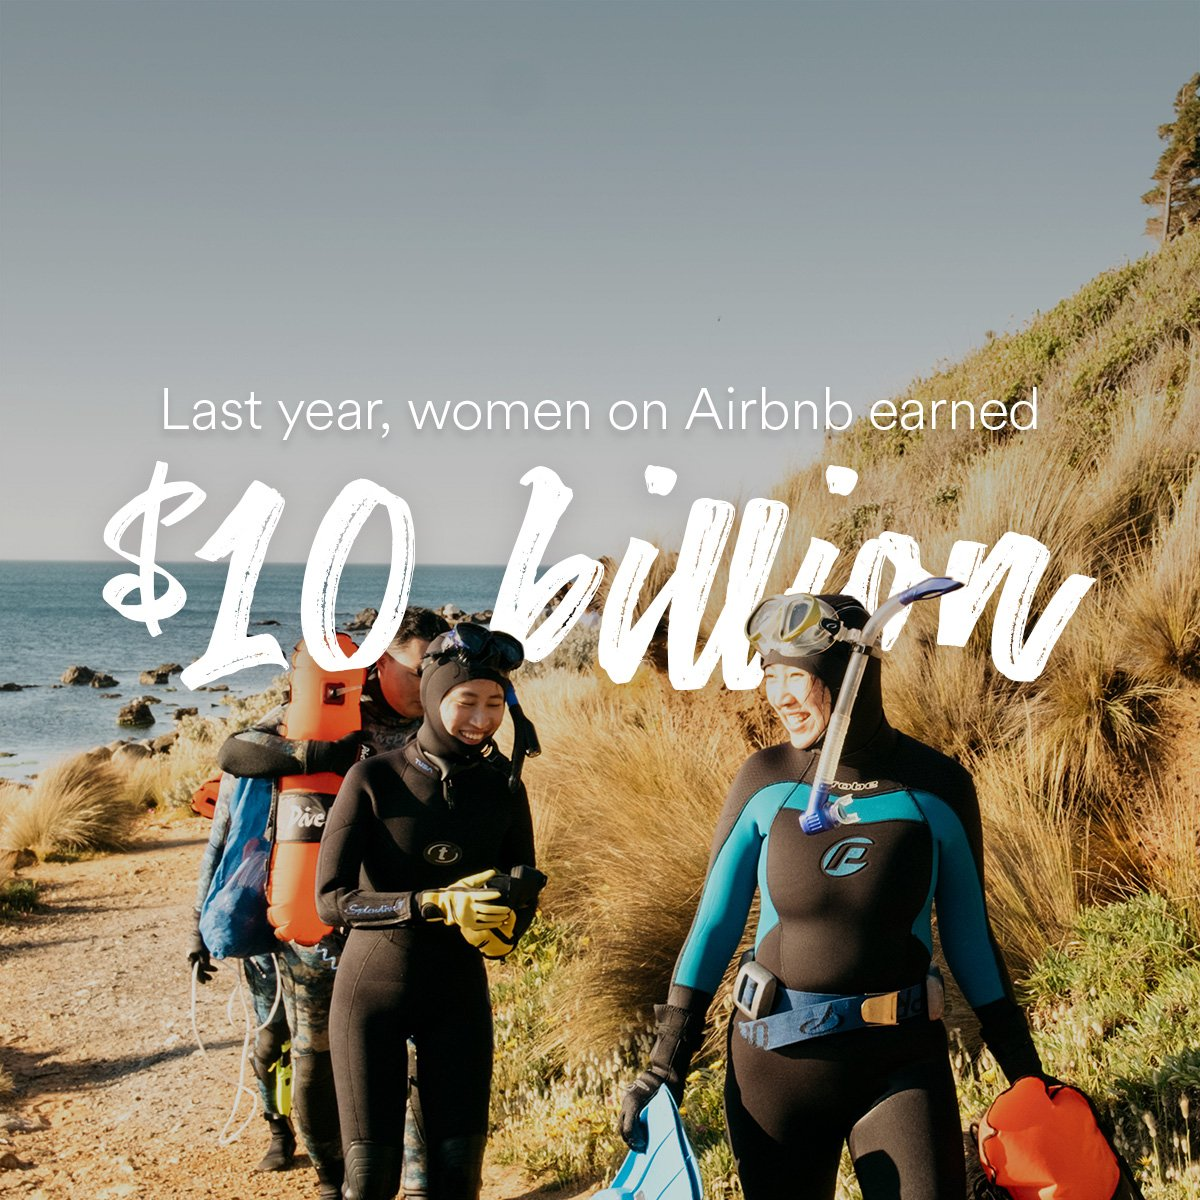 Women make up the majority of the Airbnb host community.   We are proud to share some of their accomplishments. https://t.co/MADsBg98wK